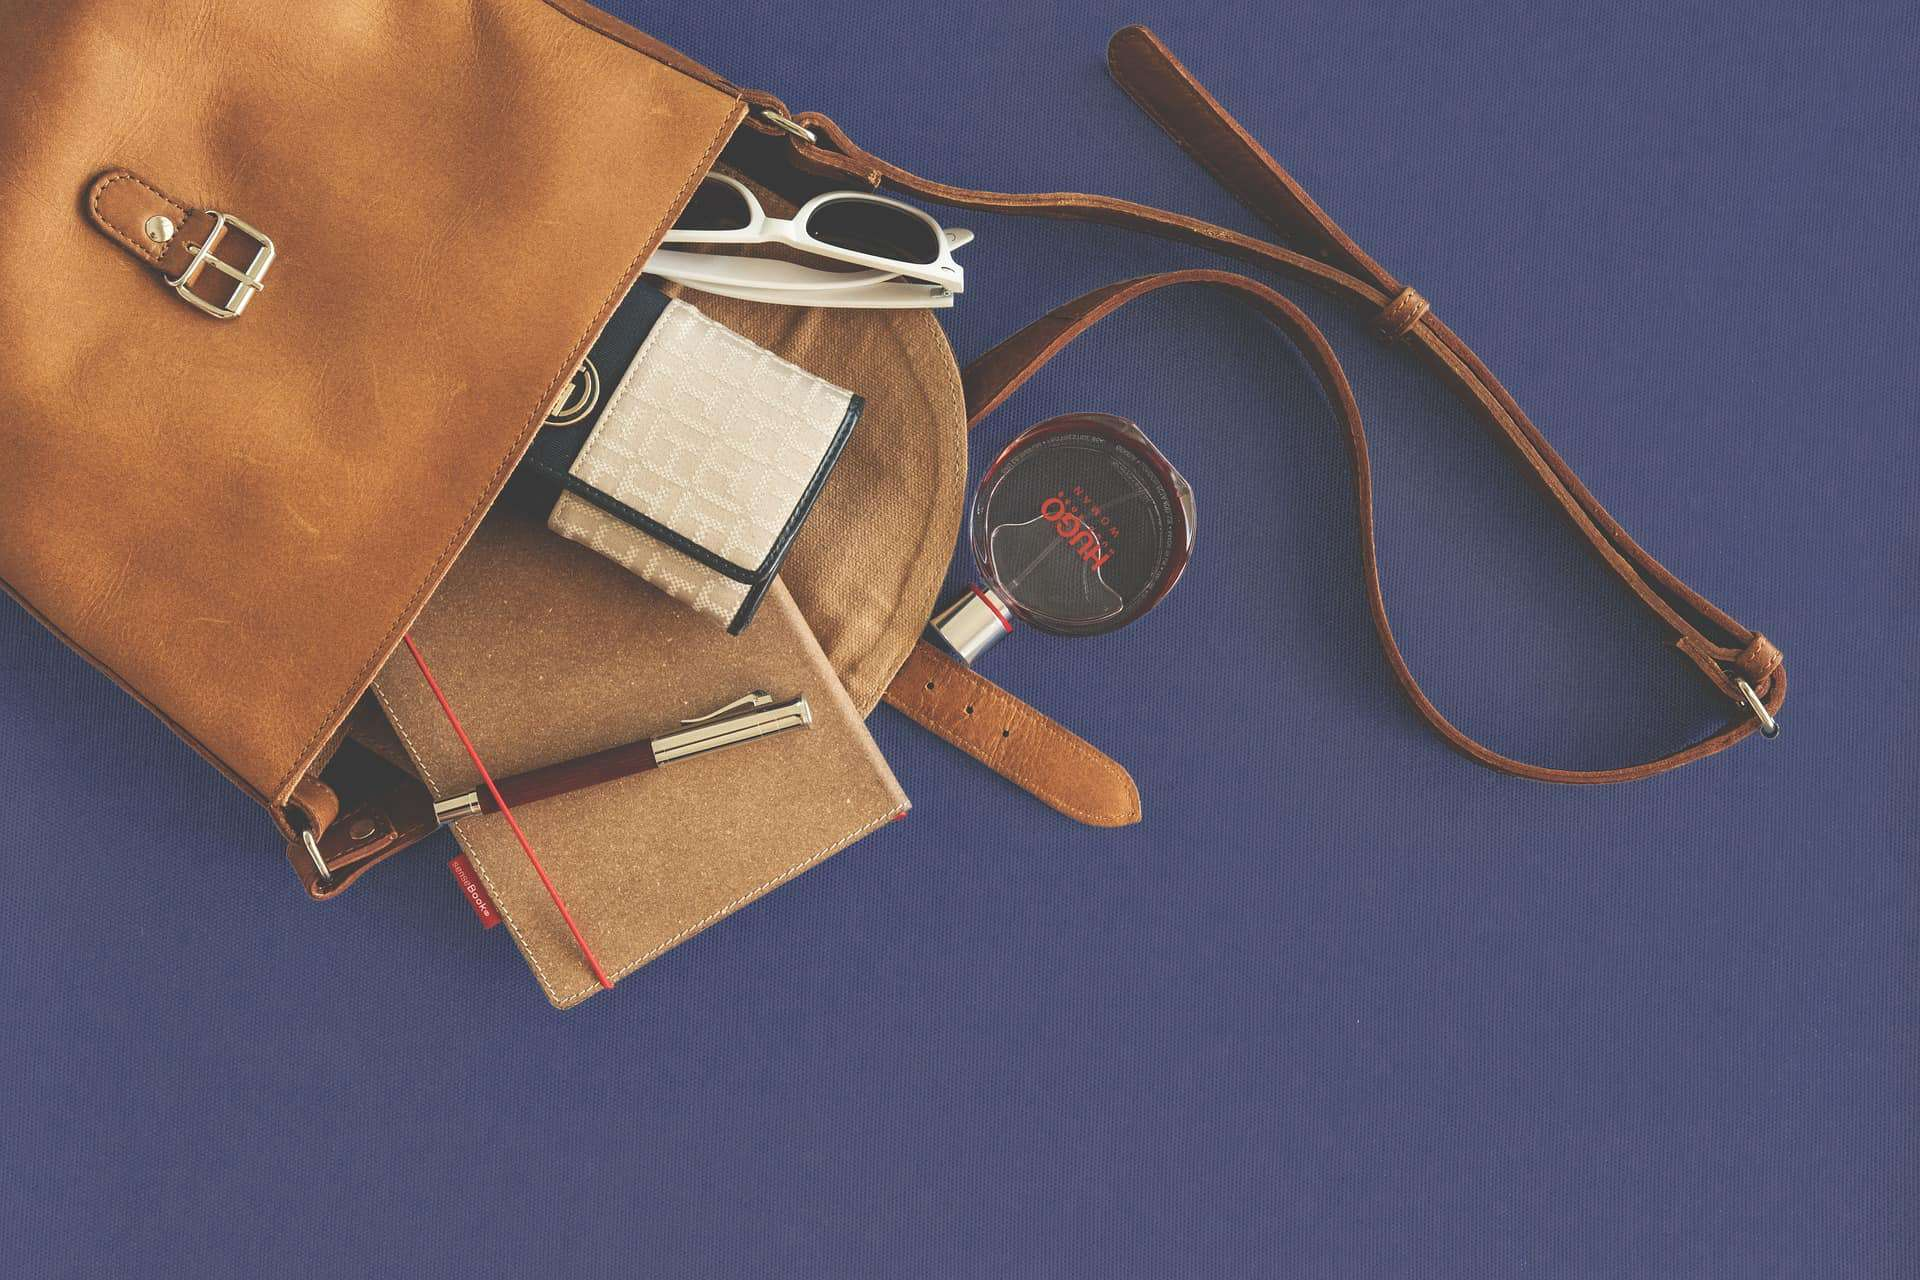 Leather Bag and Items - Liberty Leather Goods